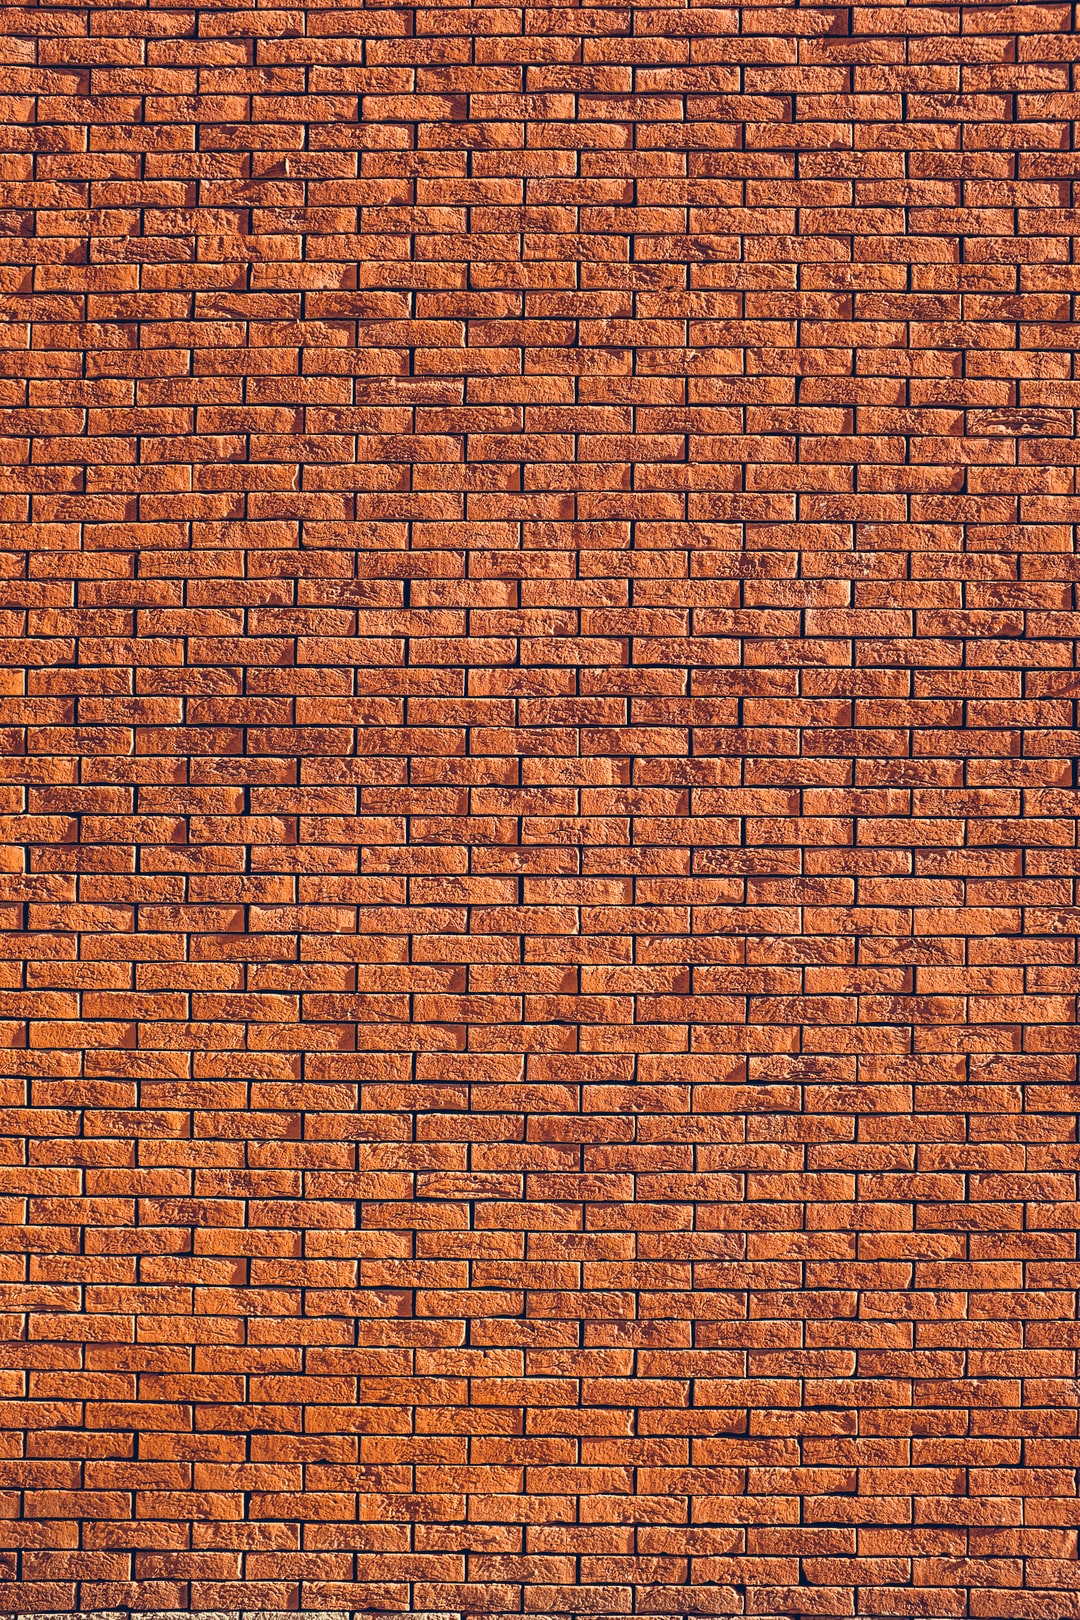 27 Brick Pictures Download Free Images On Unsplash